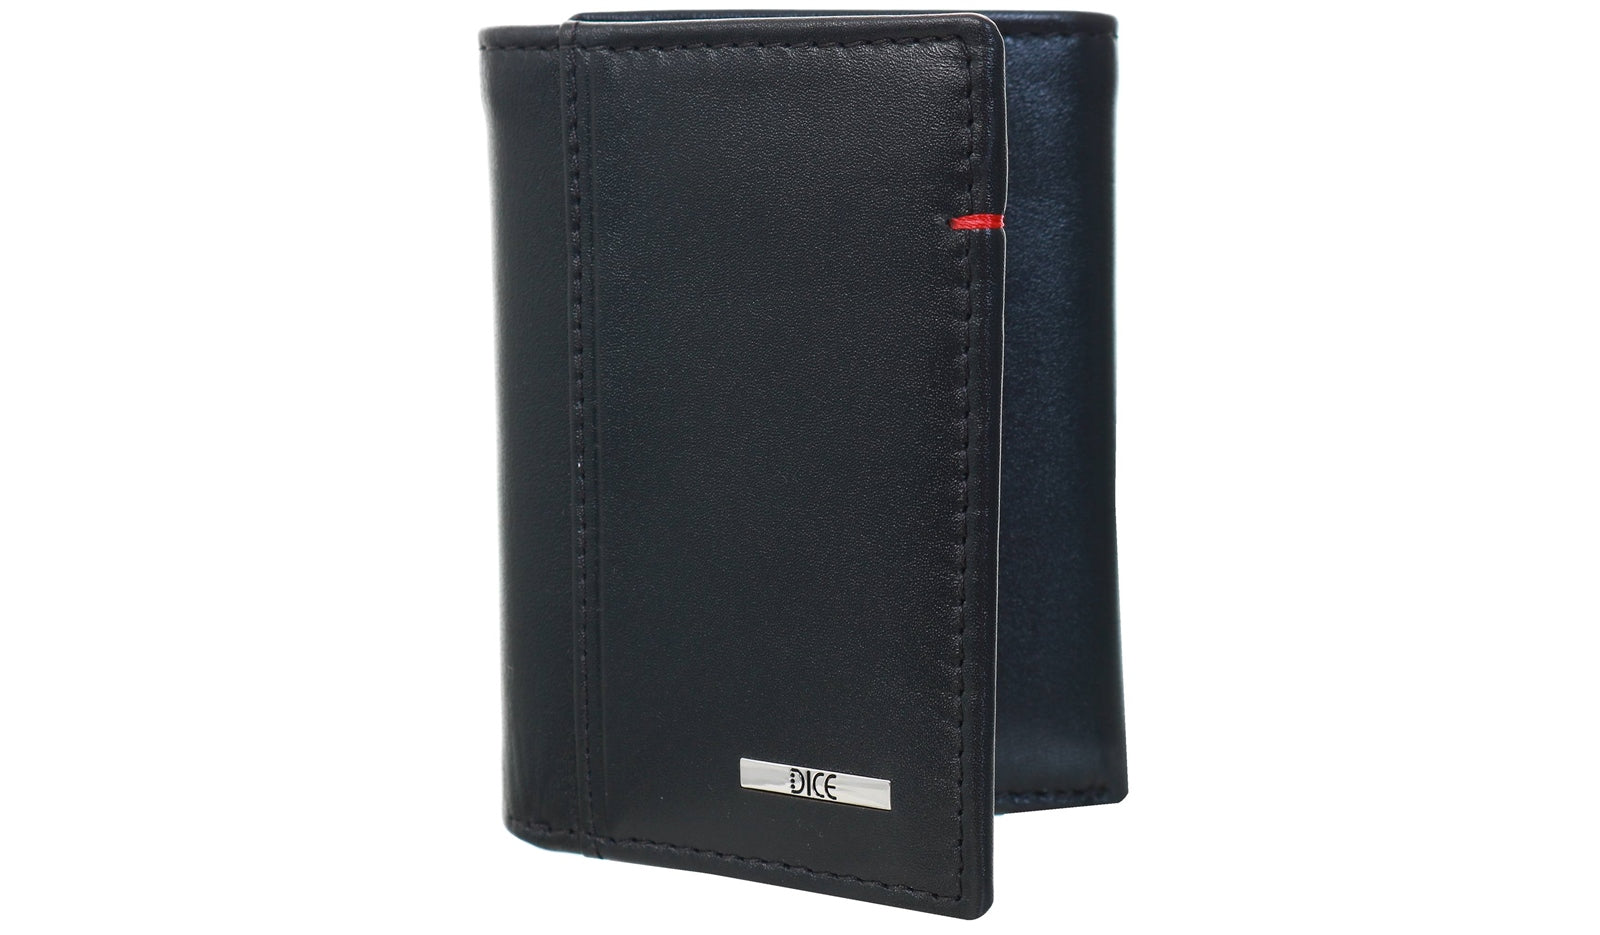 BLACK LEATHER WALLET IN A BOX